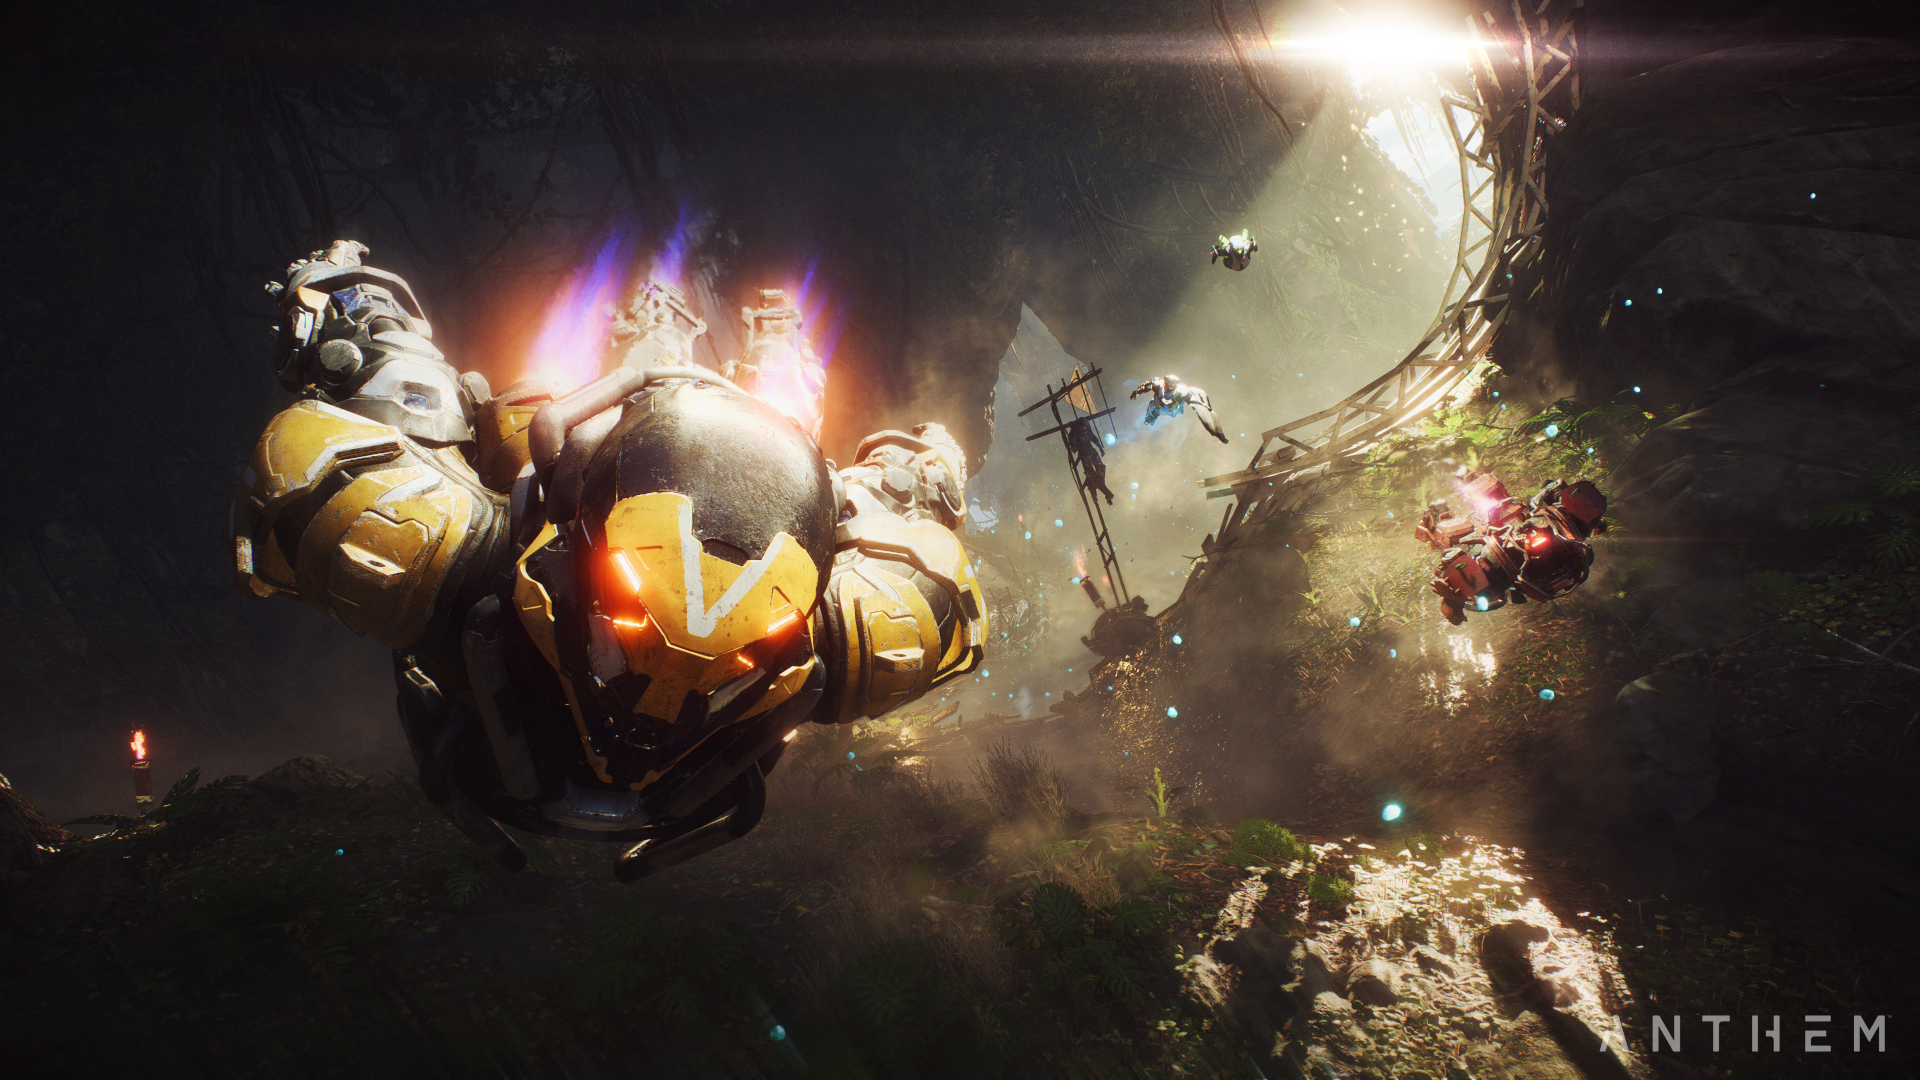 Anthem: update news, DLC, tips, patch notes and more | TechRadar